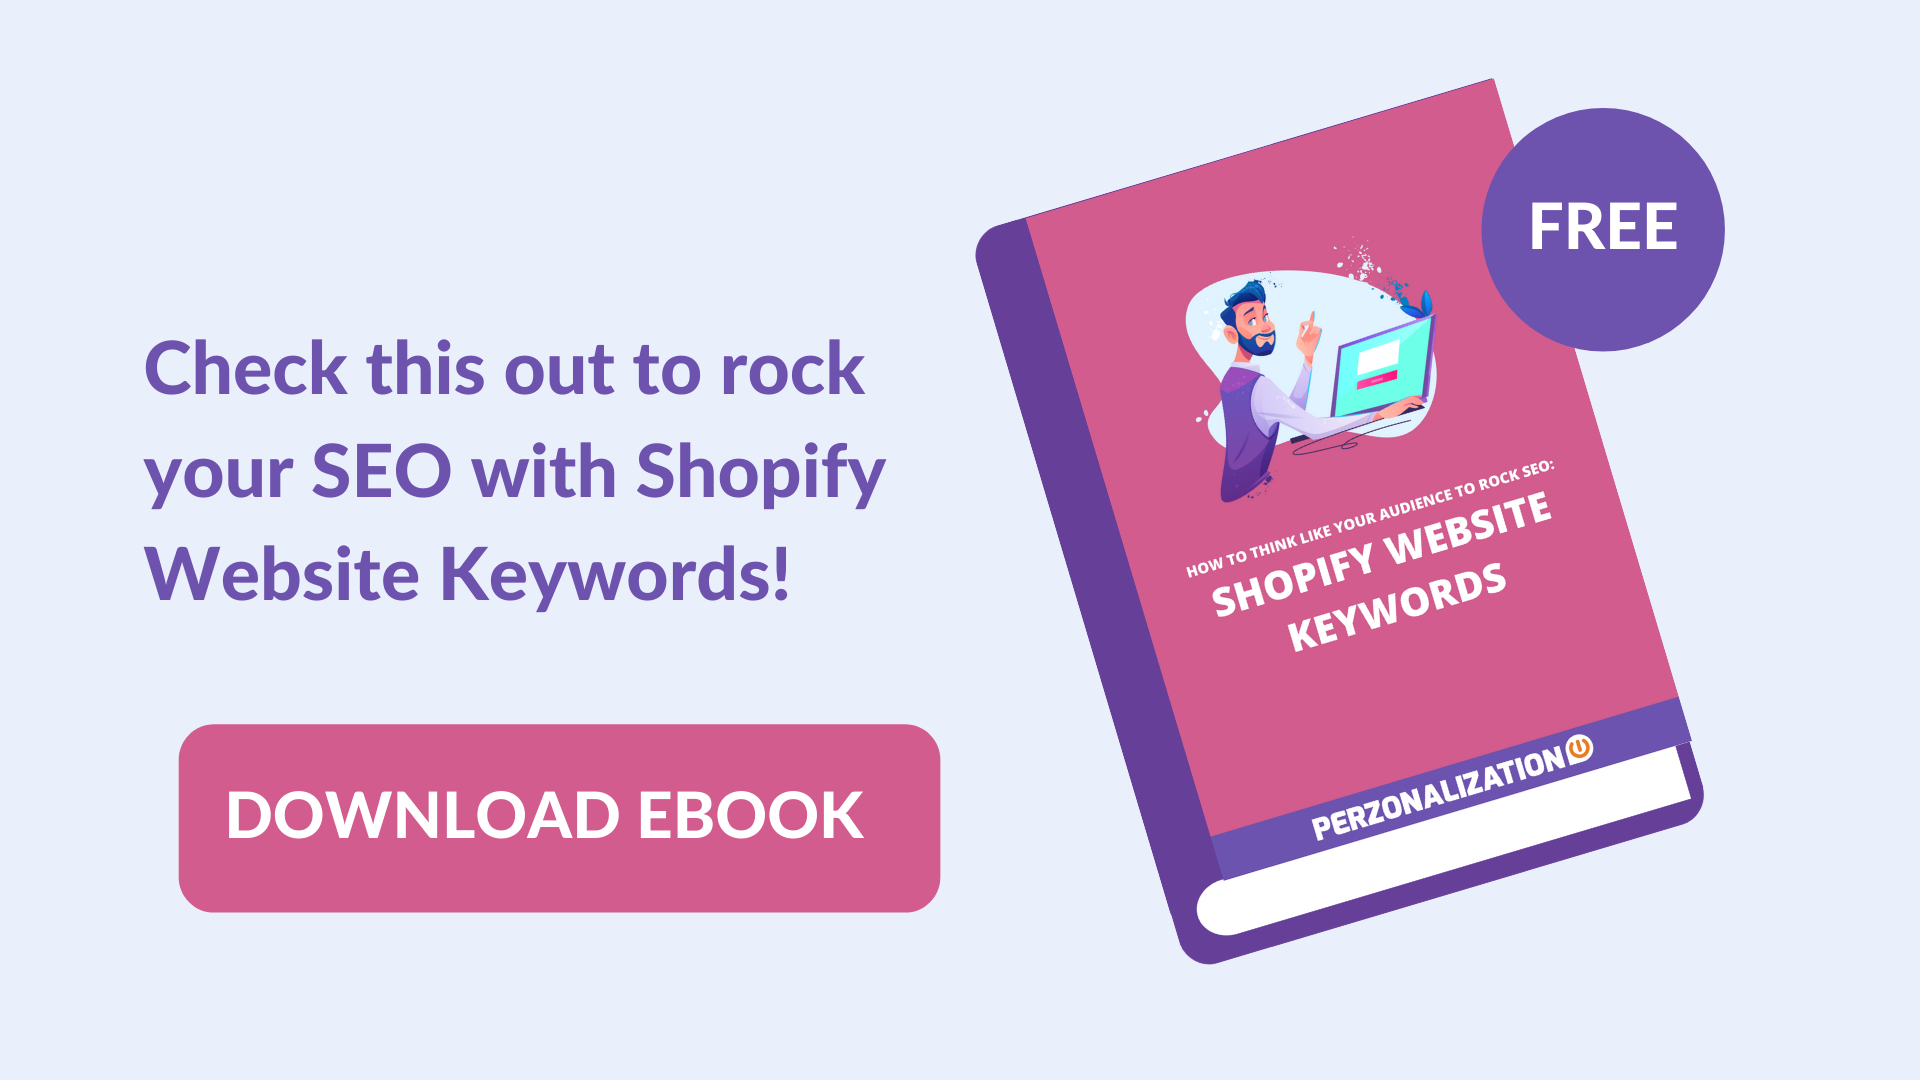 A successful selection of Shopify website keywords will not only get you increased traffic to your website but will also result in increased conversions. Discover more in this free eBook!